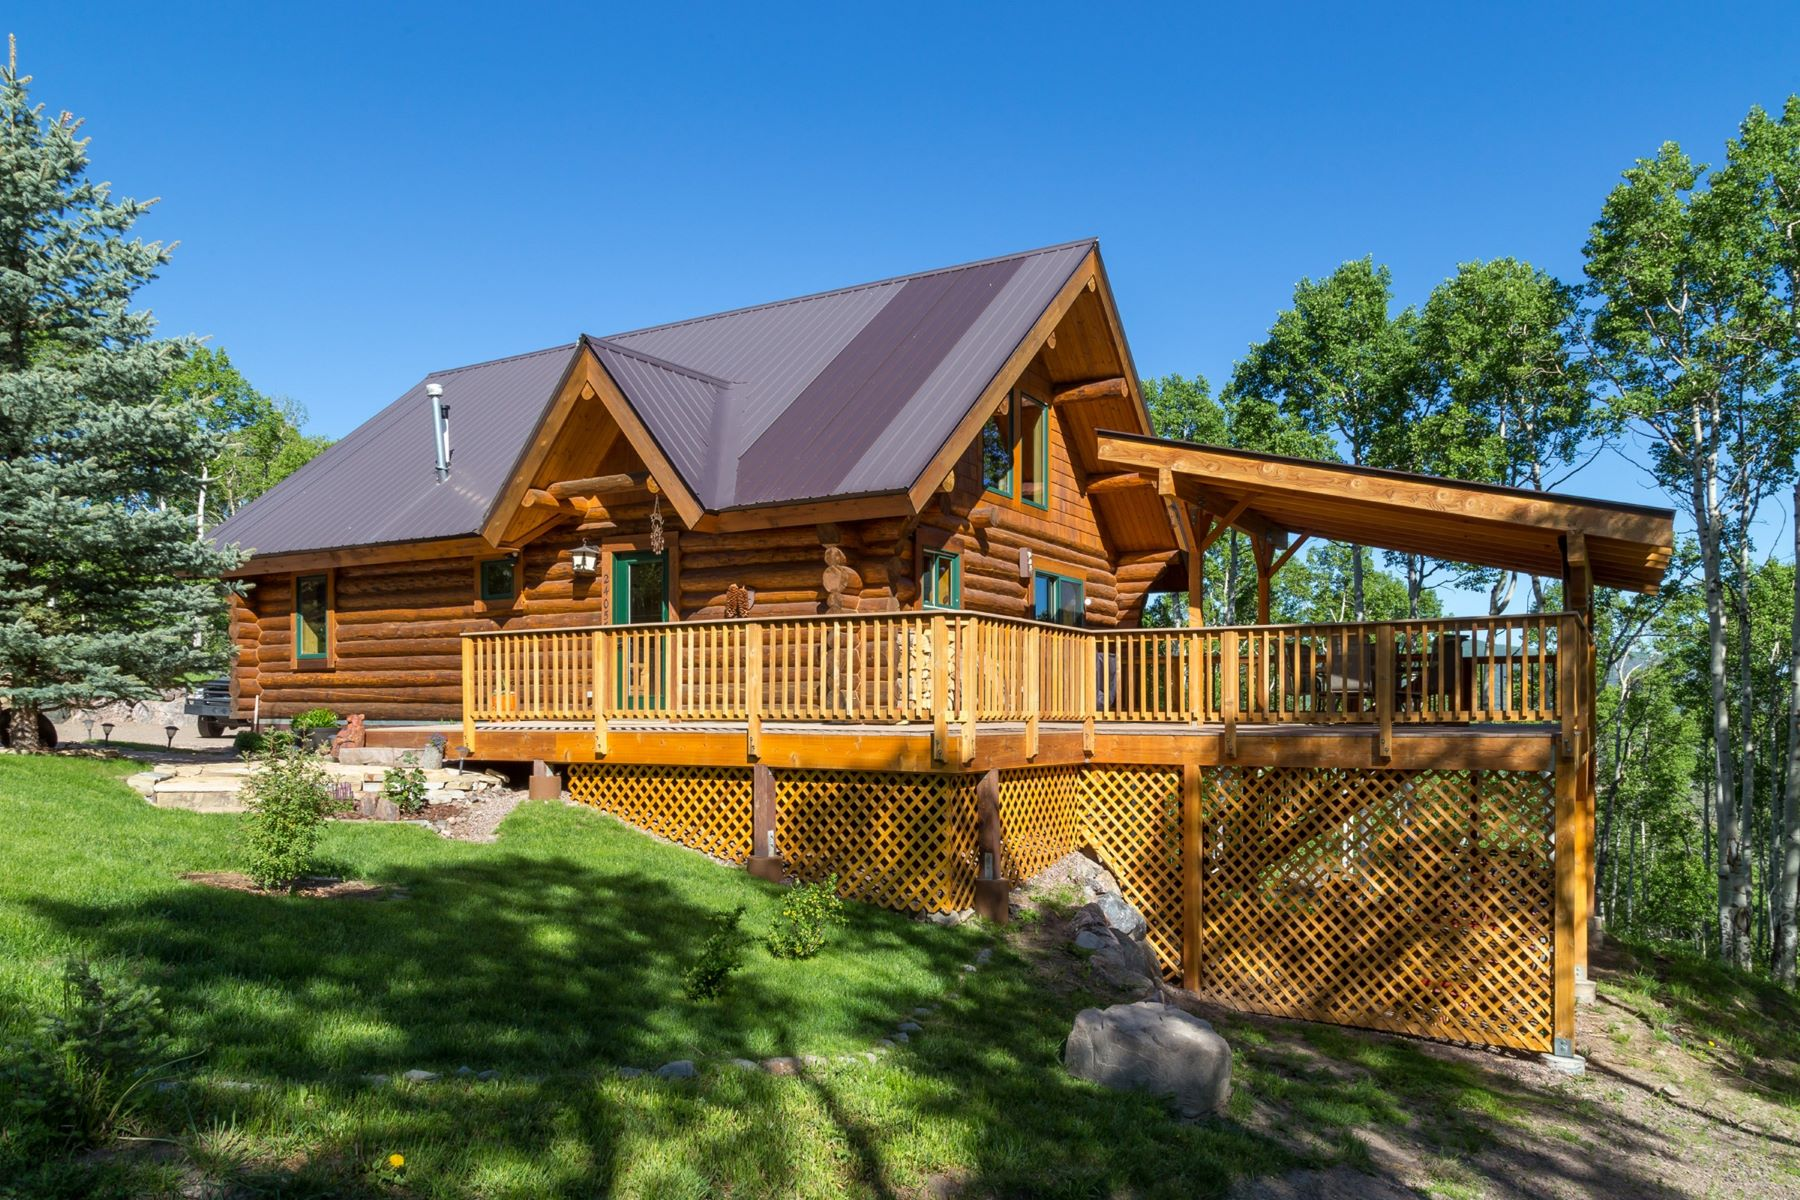 Single Family Homes for Sale at Log Home above Stagecoach Reservoir 24055 Arapahoe Rd Oak Creek, Colorado 80467 United States